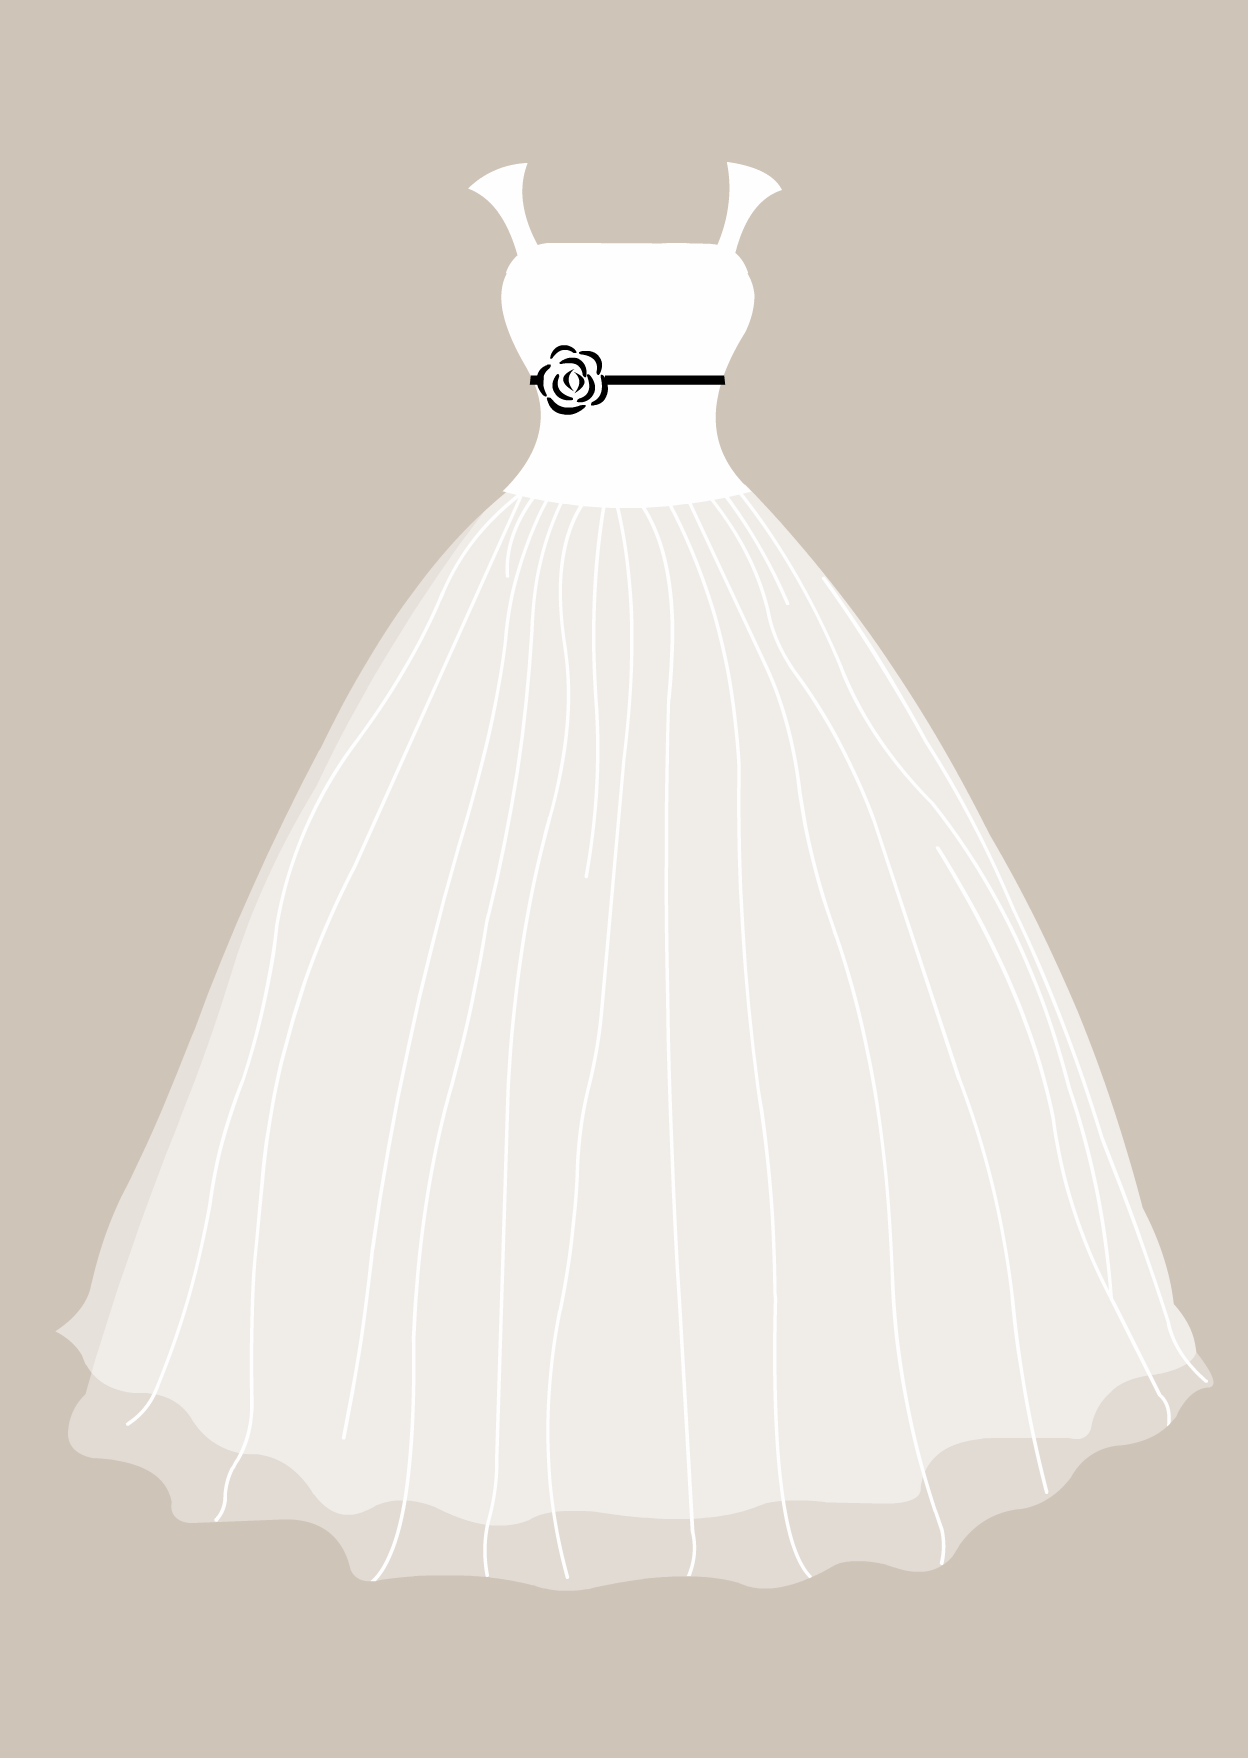 Bridesmaid dress clipart image freeuse wedding dress clipart - Google Search … | Quilling Templates ... image freeuse